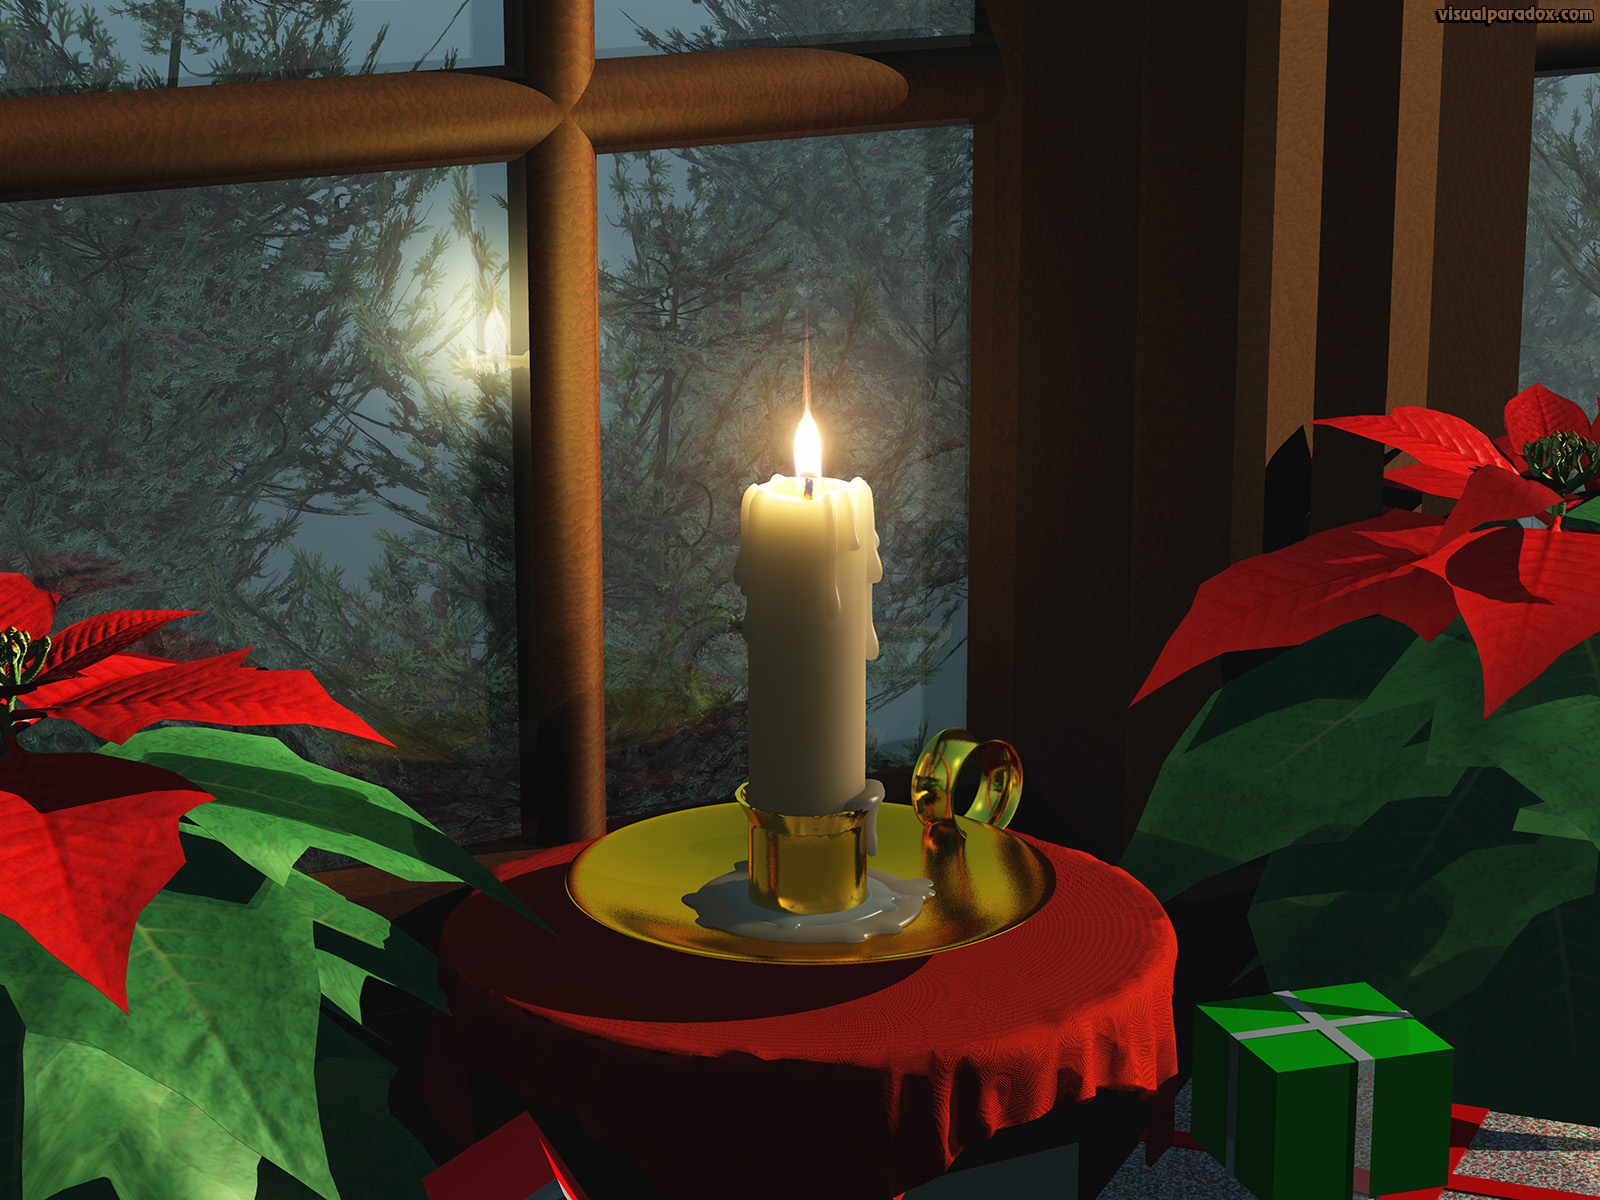 candle, window, fire, holiday, xmas, christmas, flame, poinsettia, candlestick, 3d, wallpaper